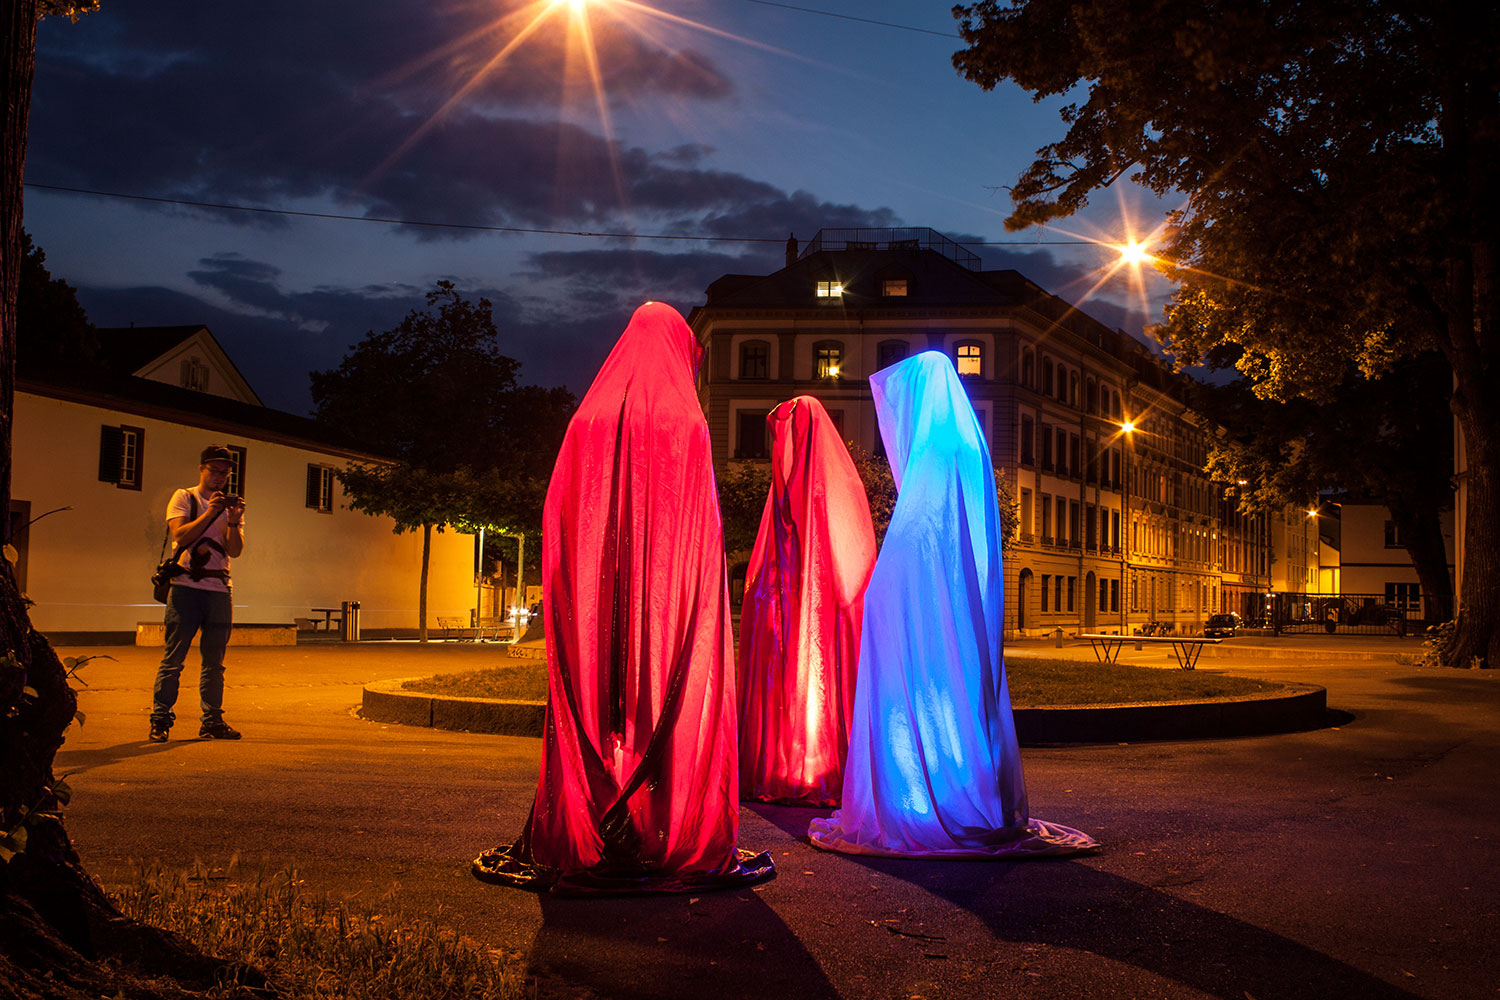 highlights-public-artbasel-scope-art-show-guardians-of-time-manfred-kielnhofer-steinreich-contemporary-art-sculpture-tour-art-parcours-1489